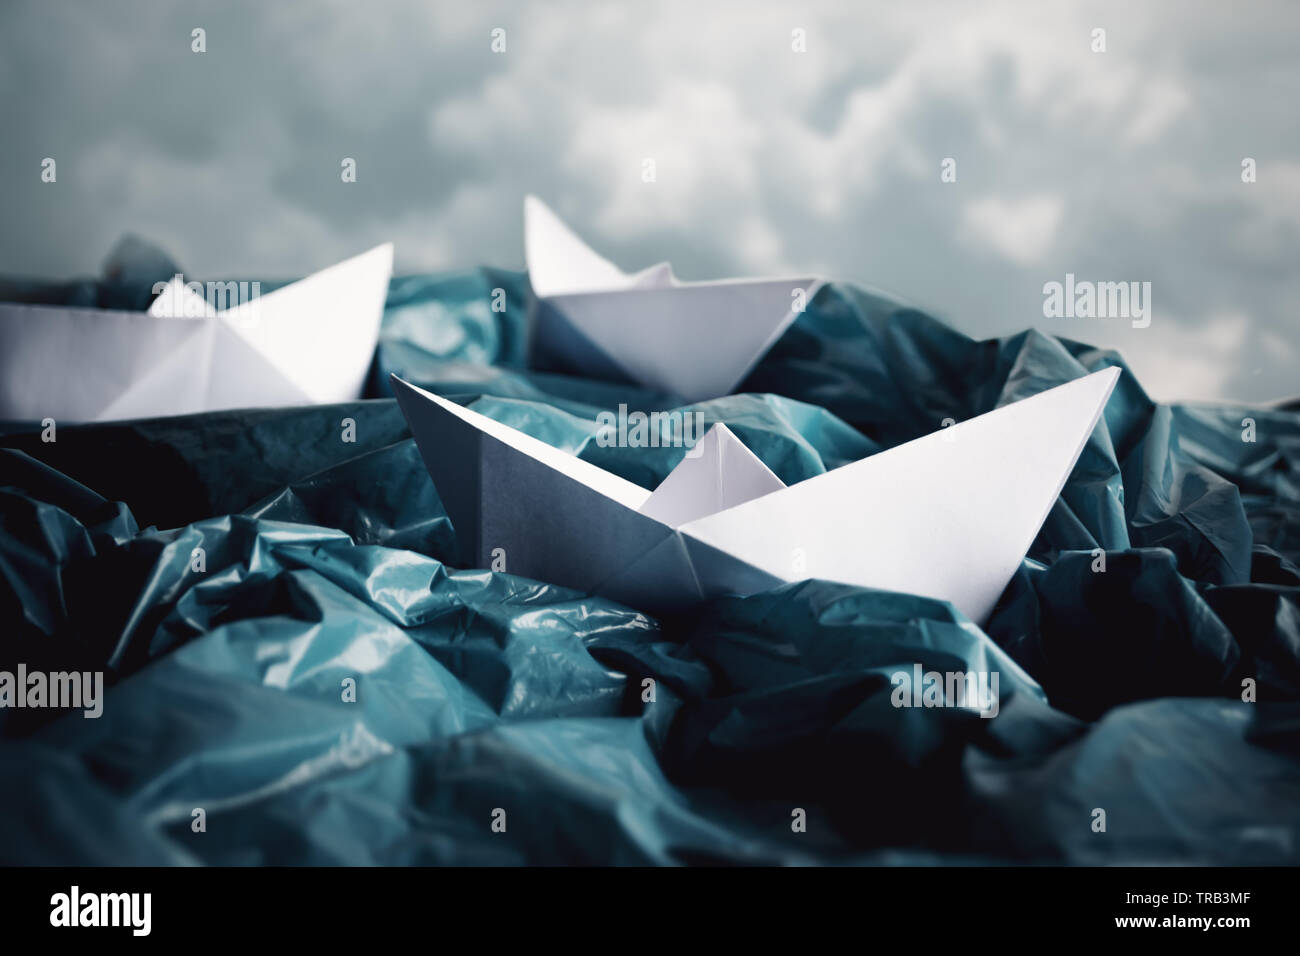 Concept of ocean pollution with plastic. Paper boats in stormy sea made of plastic bags. Creative representation of plastic ocean. - Stock Image